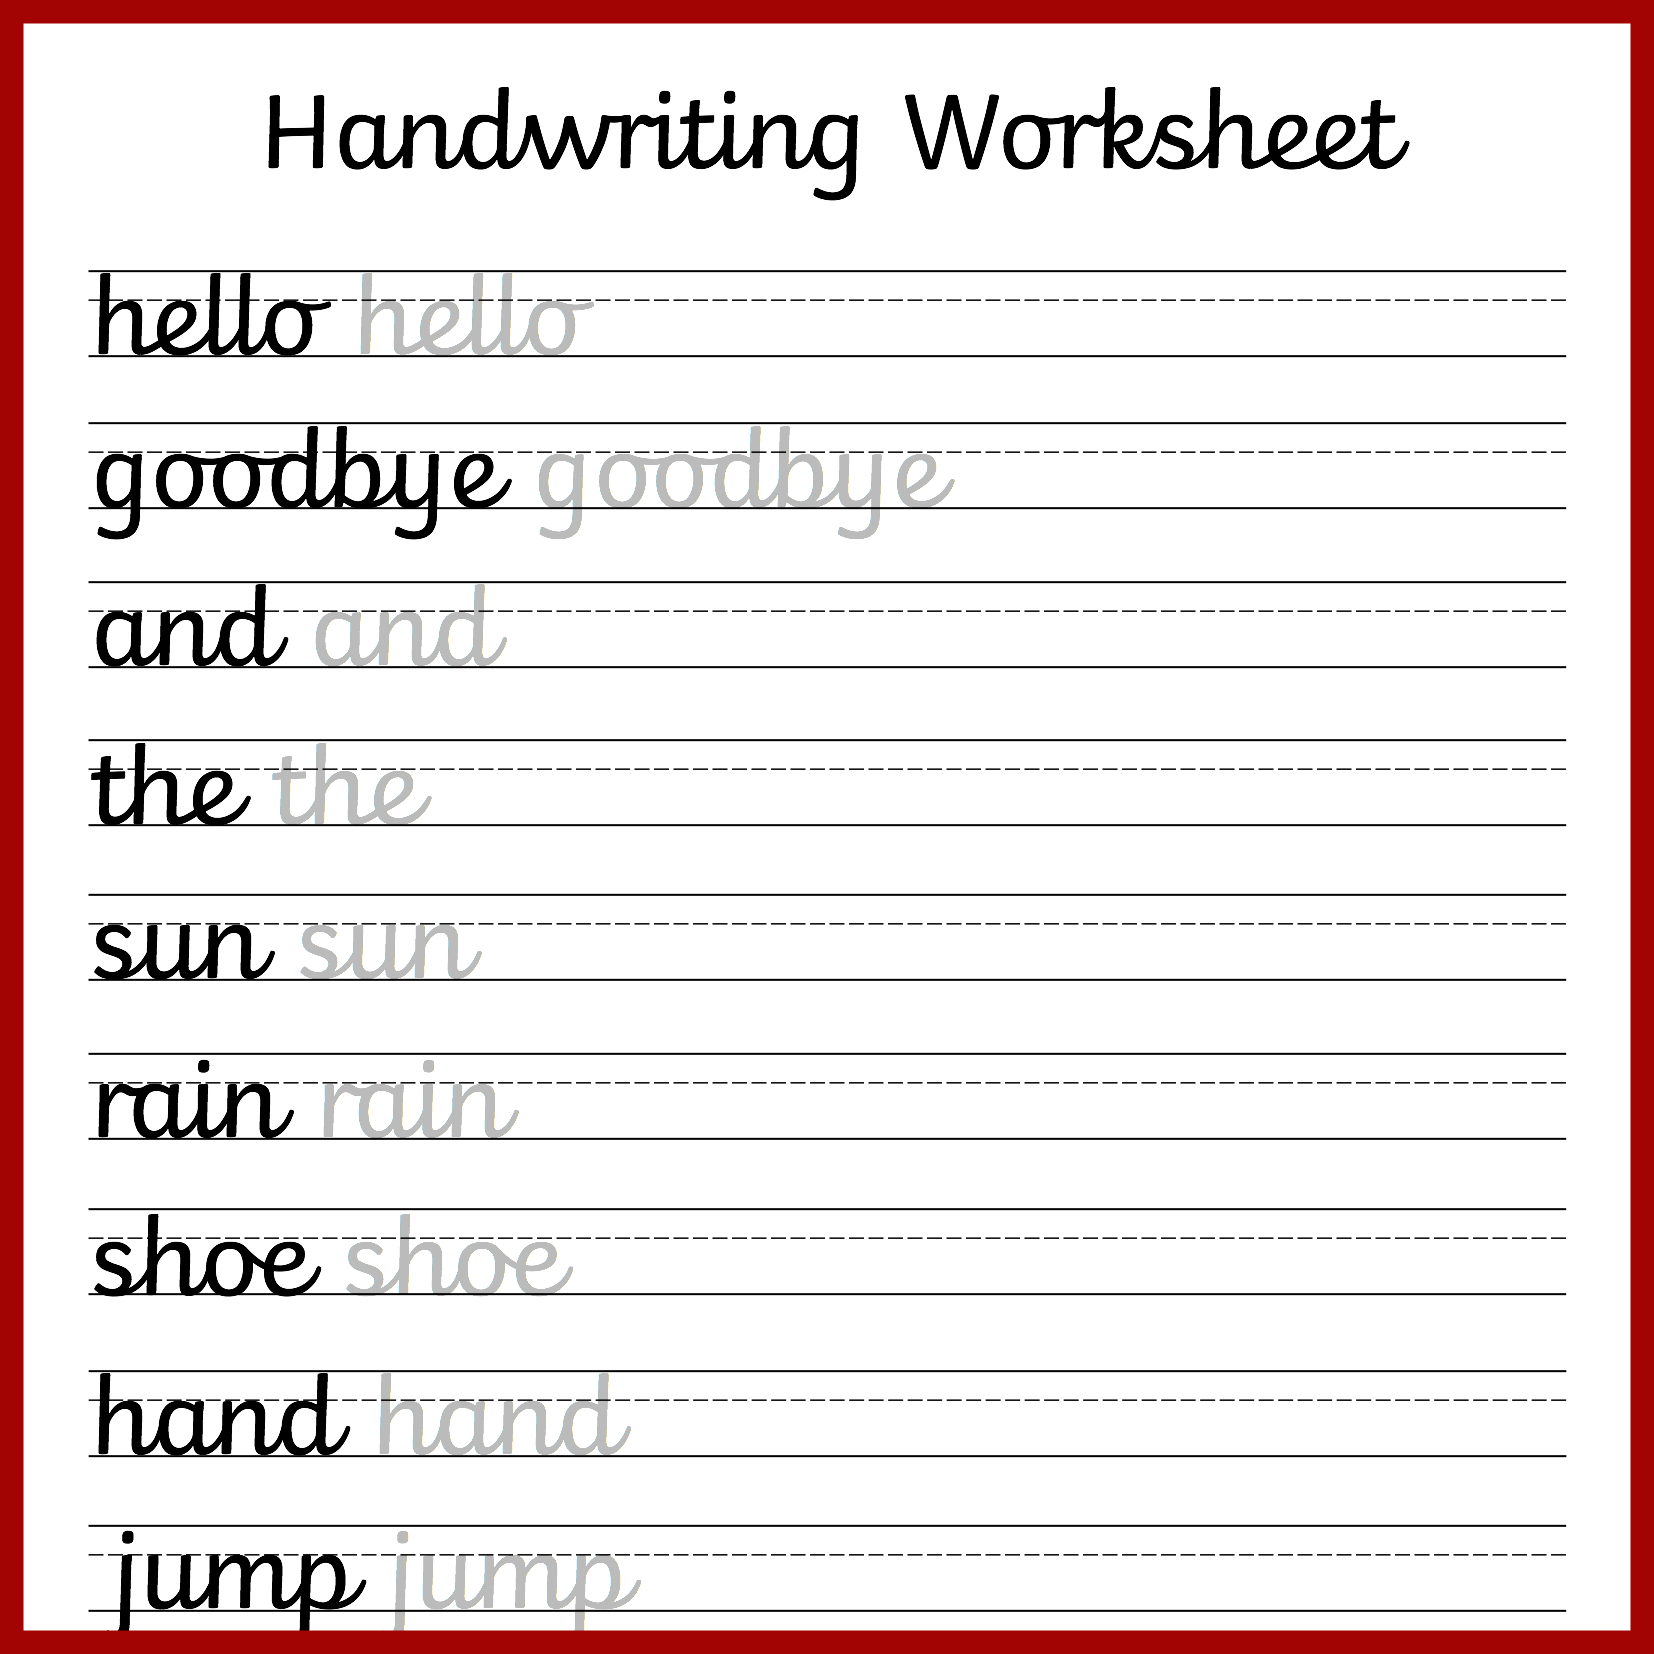 Cursive Handwriting Worksheets – Free Printable! | Handwriting For - Free Printable Handwriting Worksheets